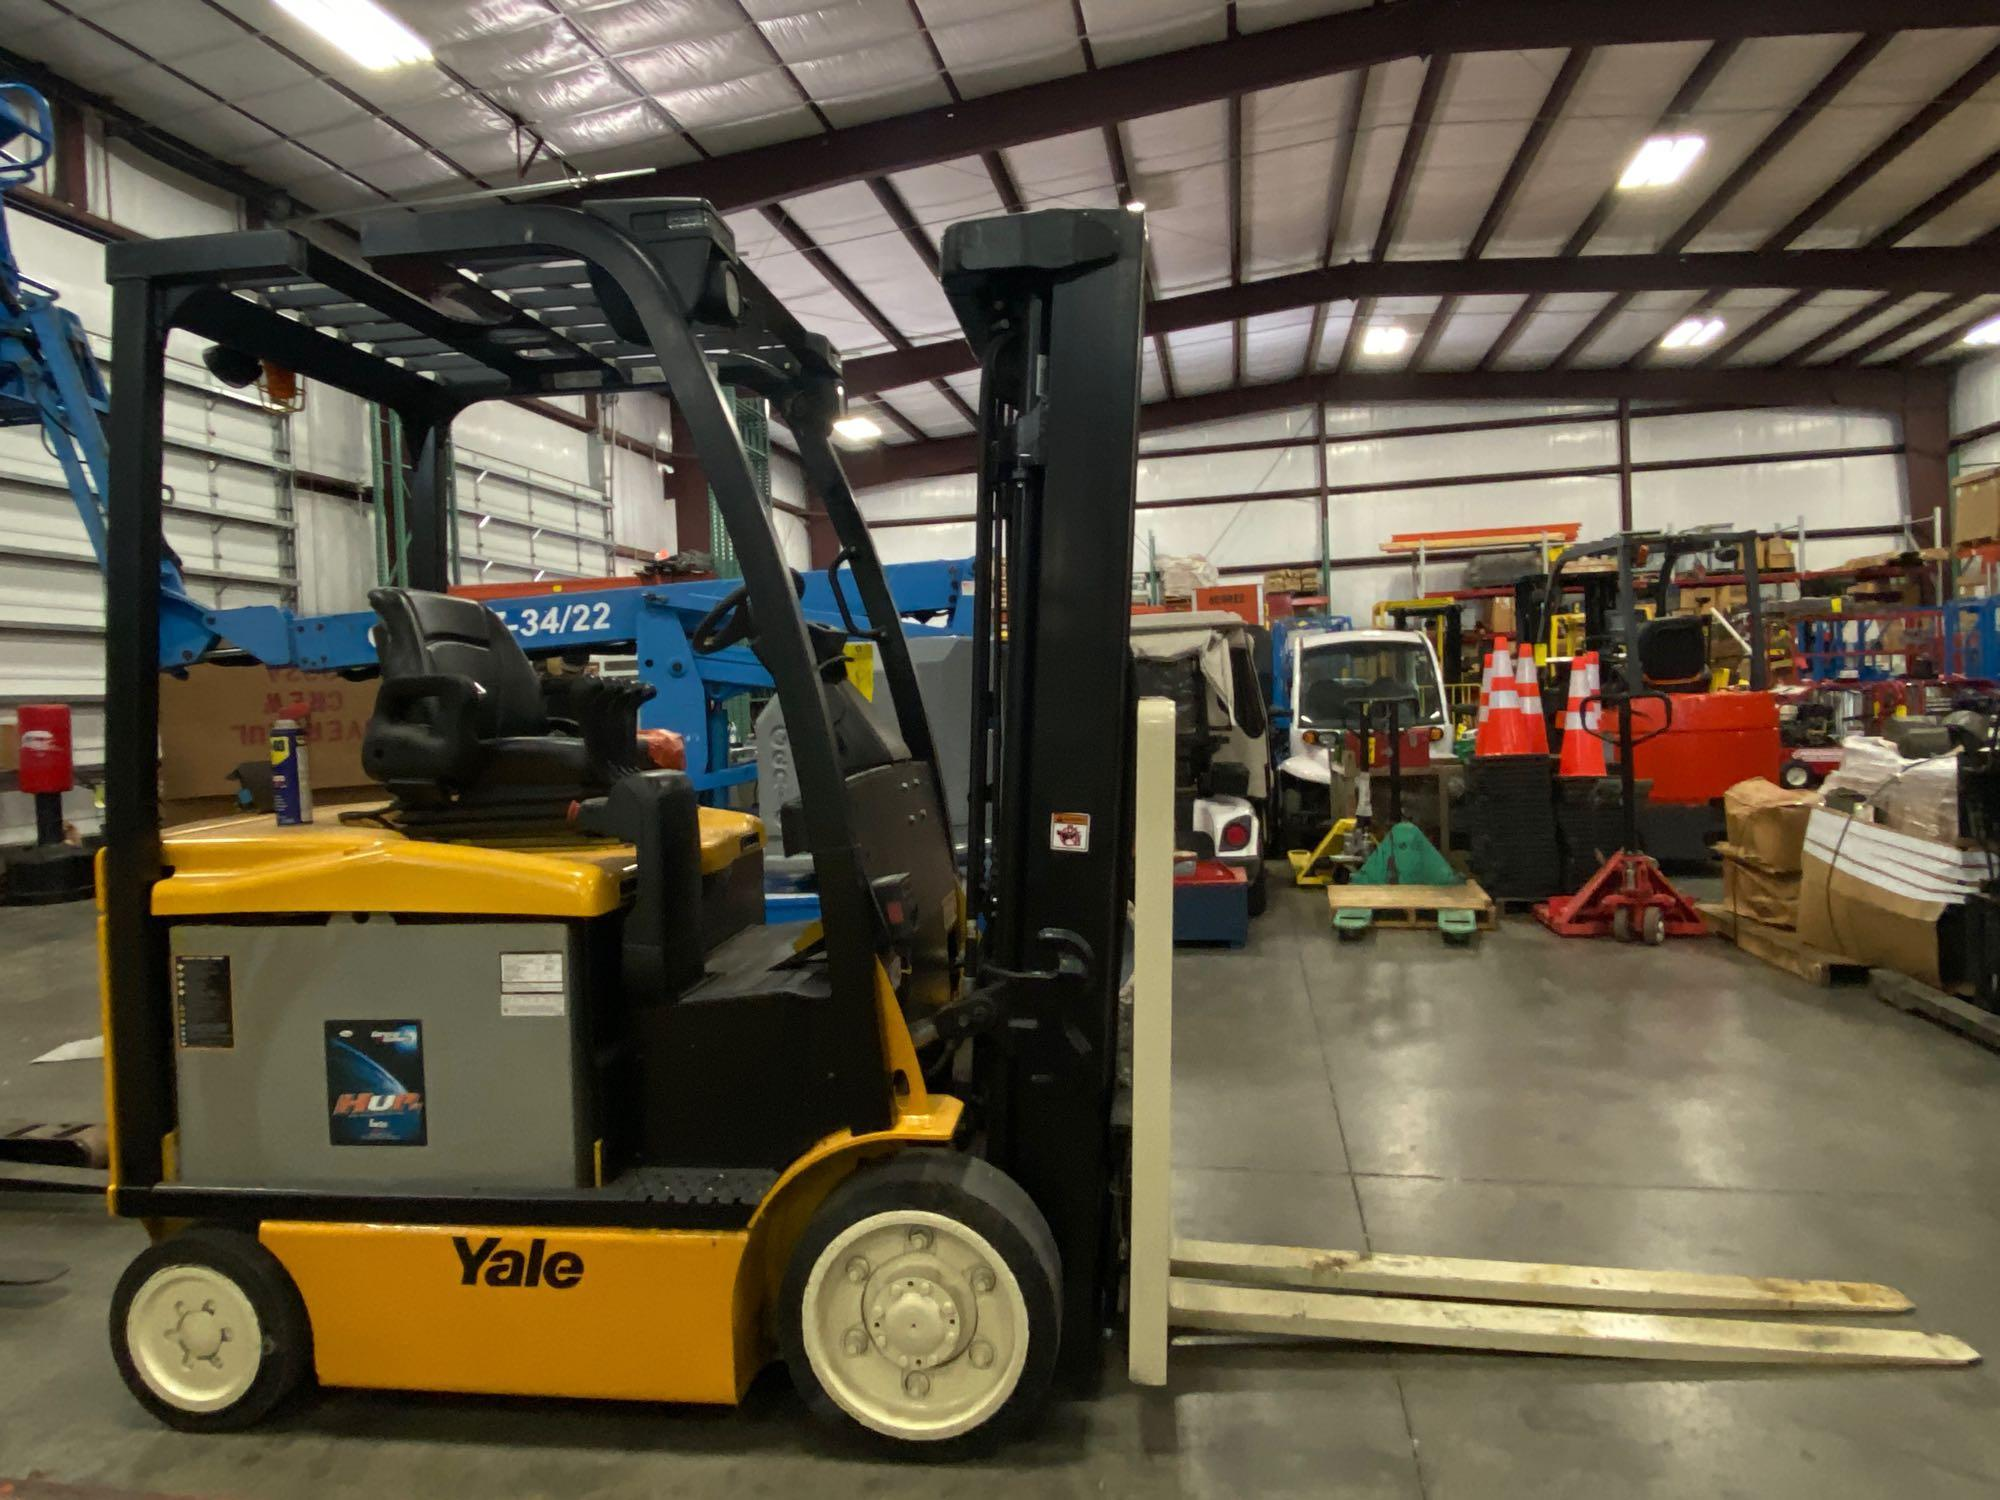 """YALE ELECTRIC FORKLIFT MODEL ERCO50VGN36TE088, 36V, 200.8"""" HEIGHT CAPACITY, APPROX. 5,000 LB CAPACIT - Image 5 of 9"""